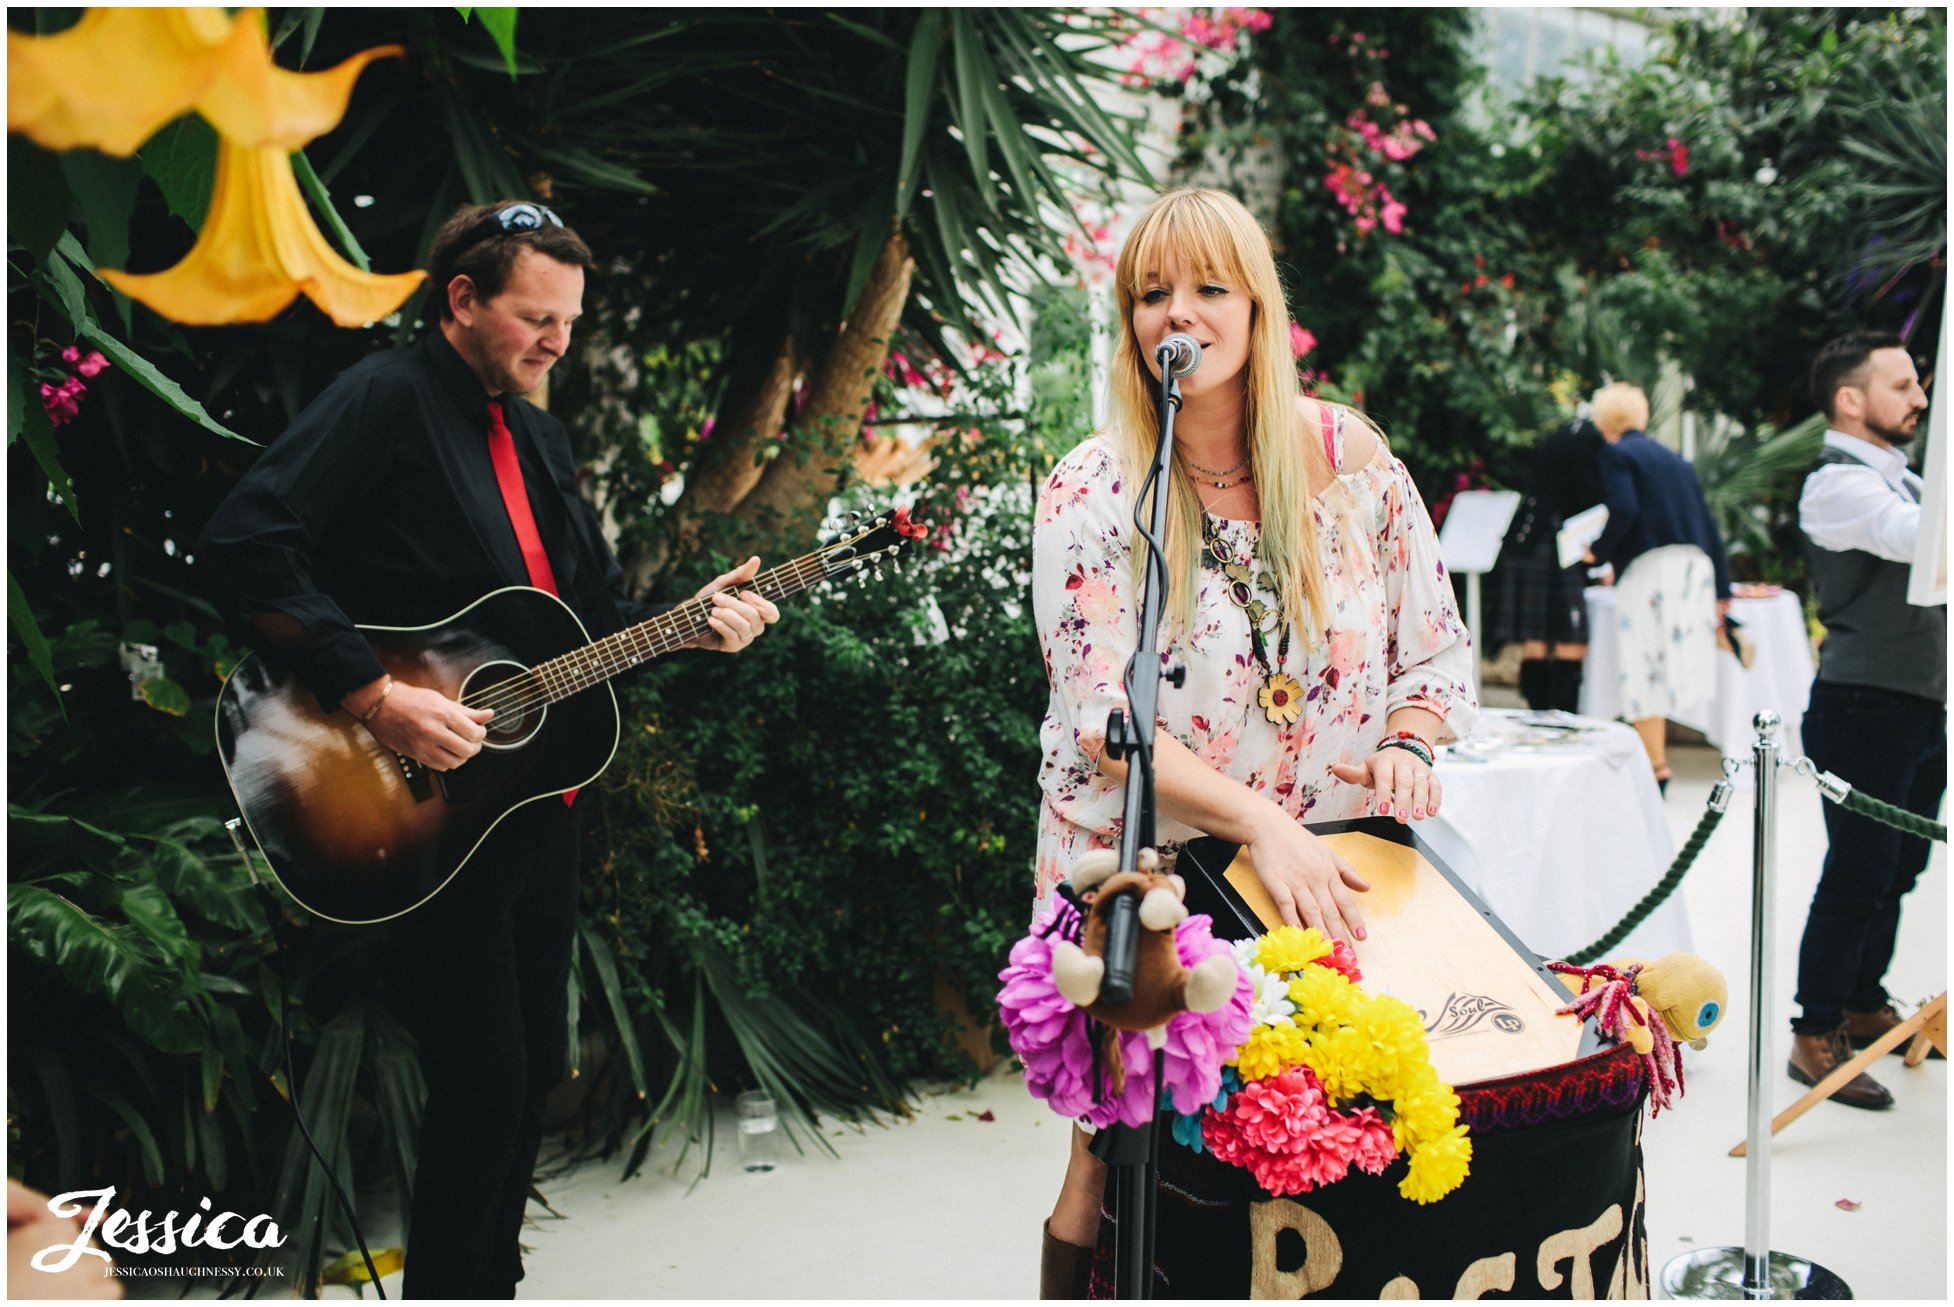 quirky band play for wedding guests